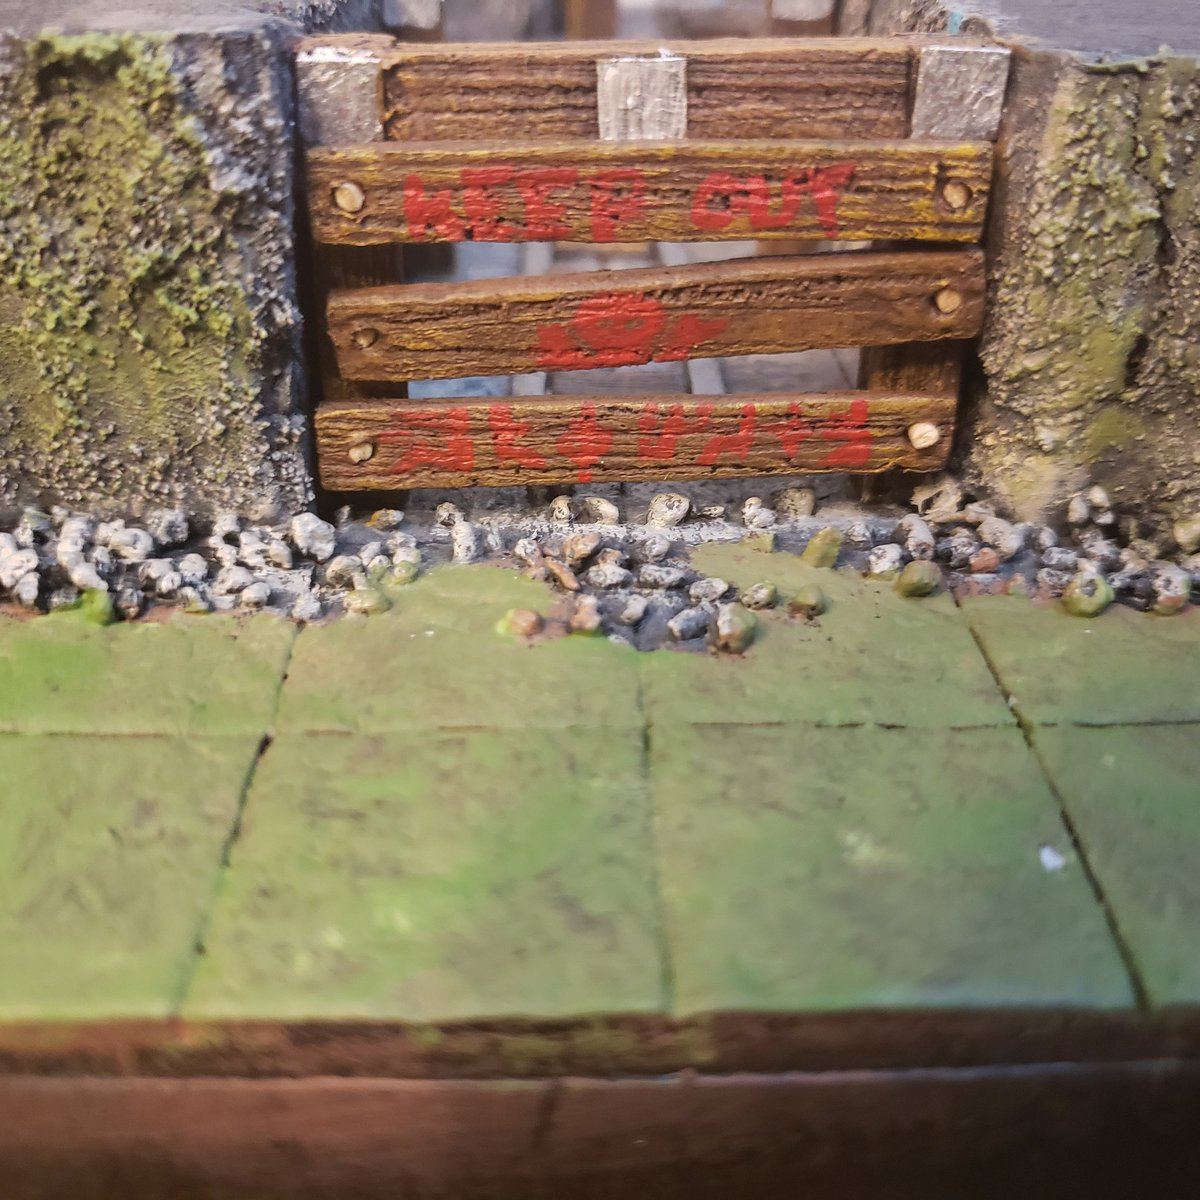 Just finished the Roaring Mines! I can give you a peek. If you want to see more, join us Wednesday at 7pm MST on Twitch! https://t.co/gjyvwcTume  #dungeonsanddragons #diceanddudes #davidstilesandterrain #handmadeterrain #ttrpg #dnd5e #homebrew #limitlessencounters #joemanganiello https://t.co/yAd1tR2Mp2